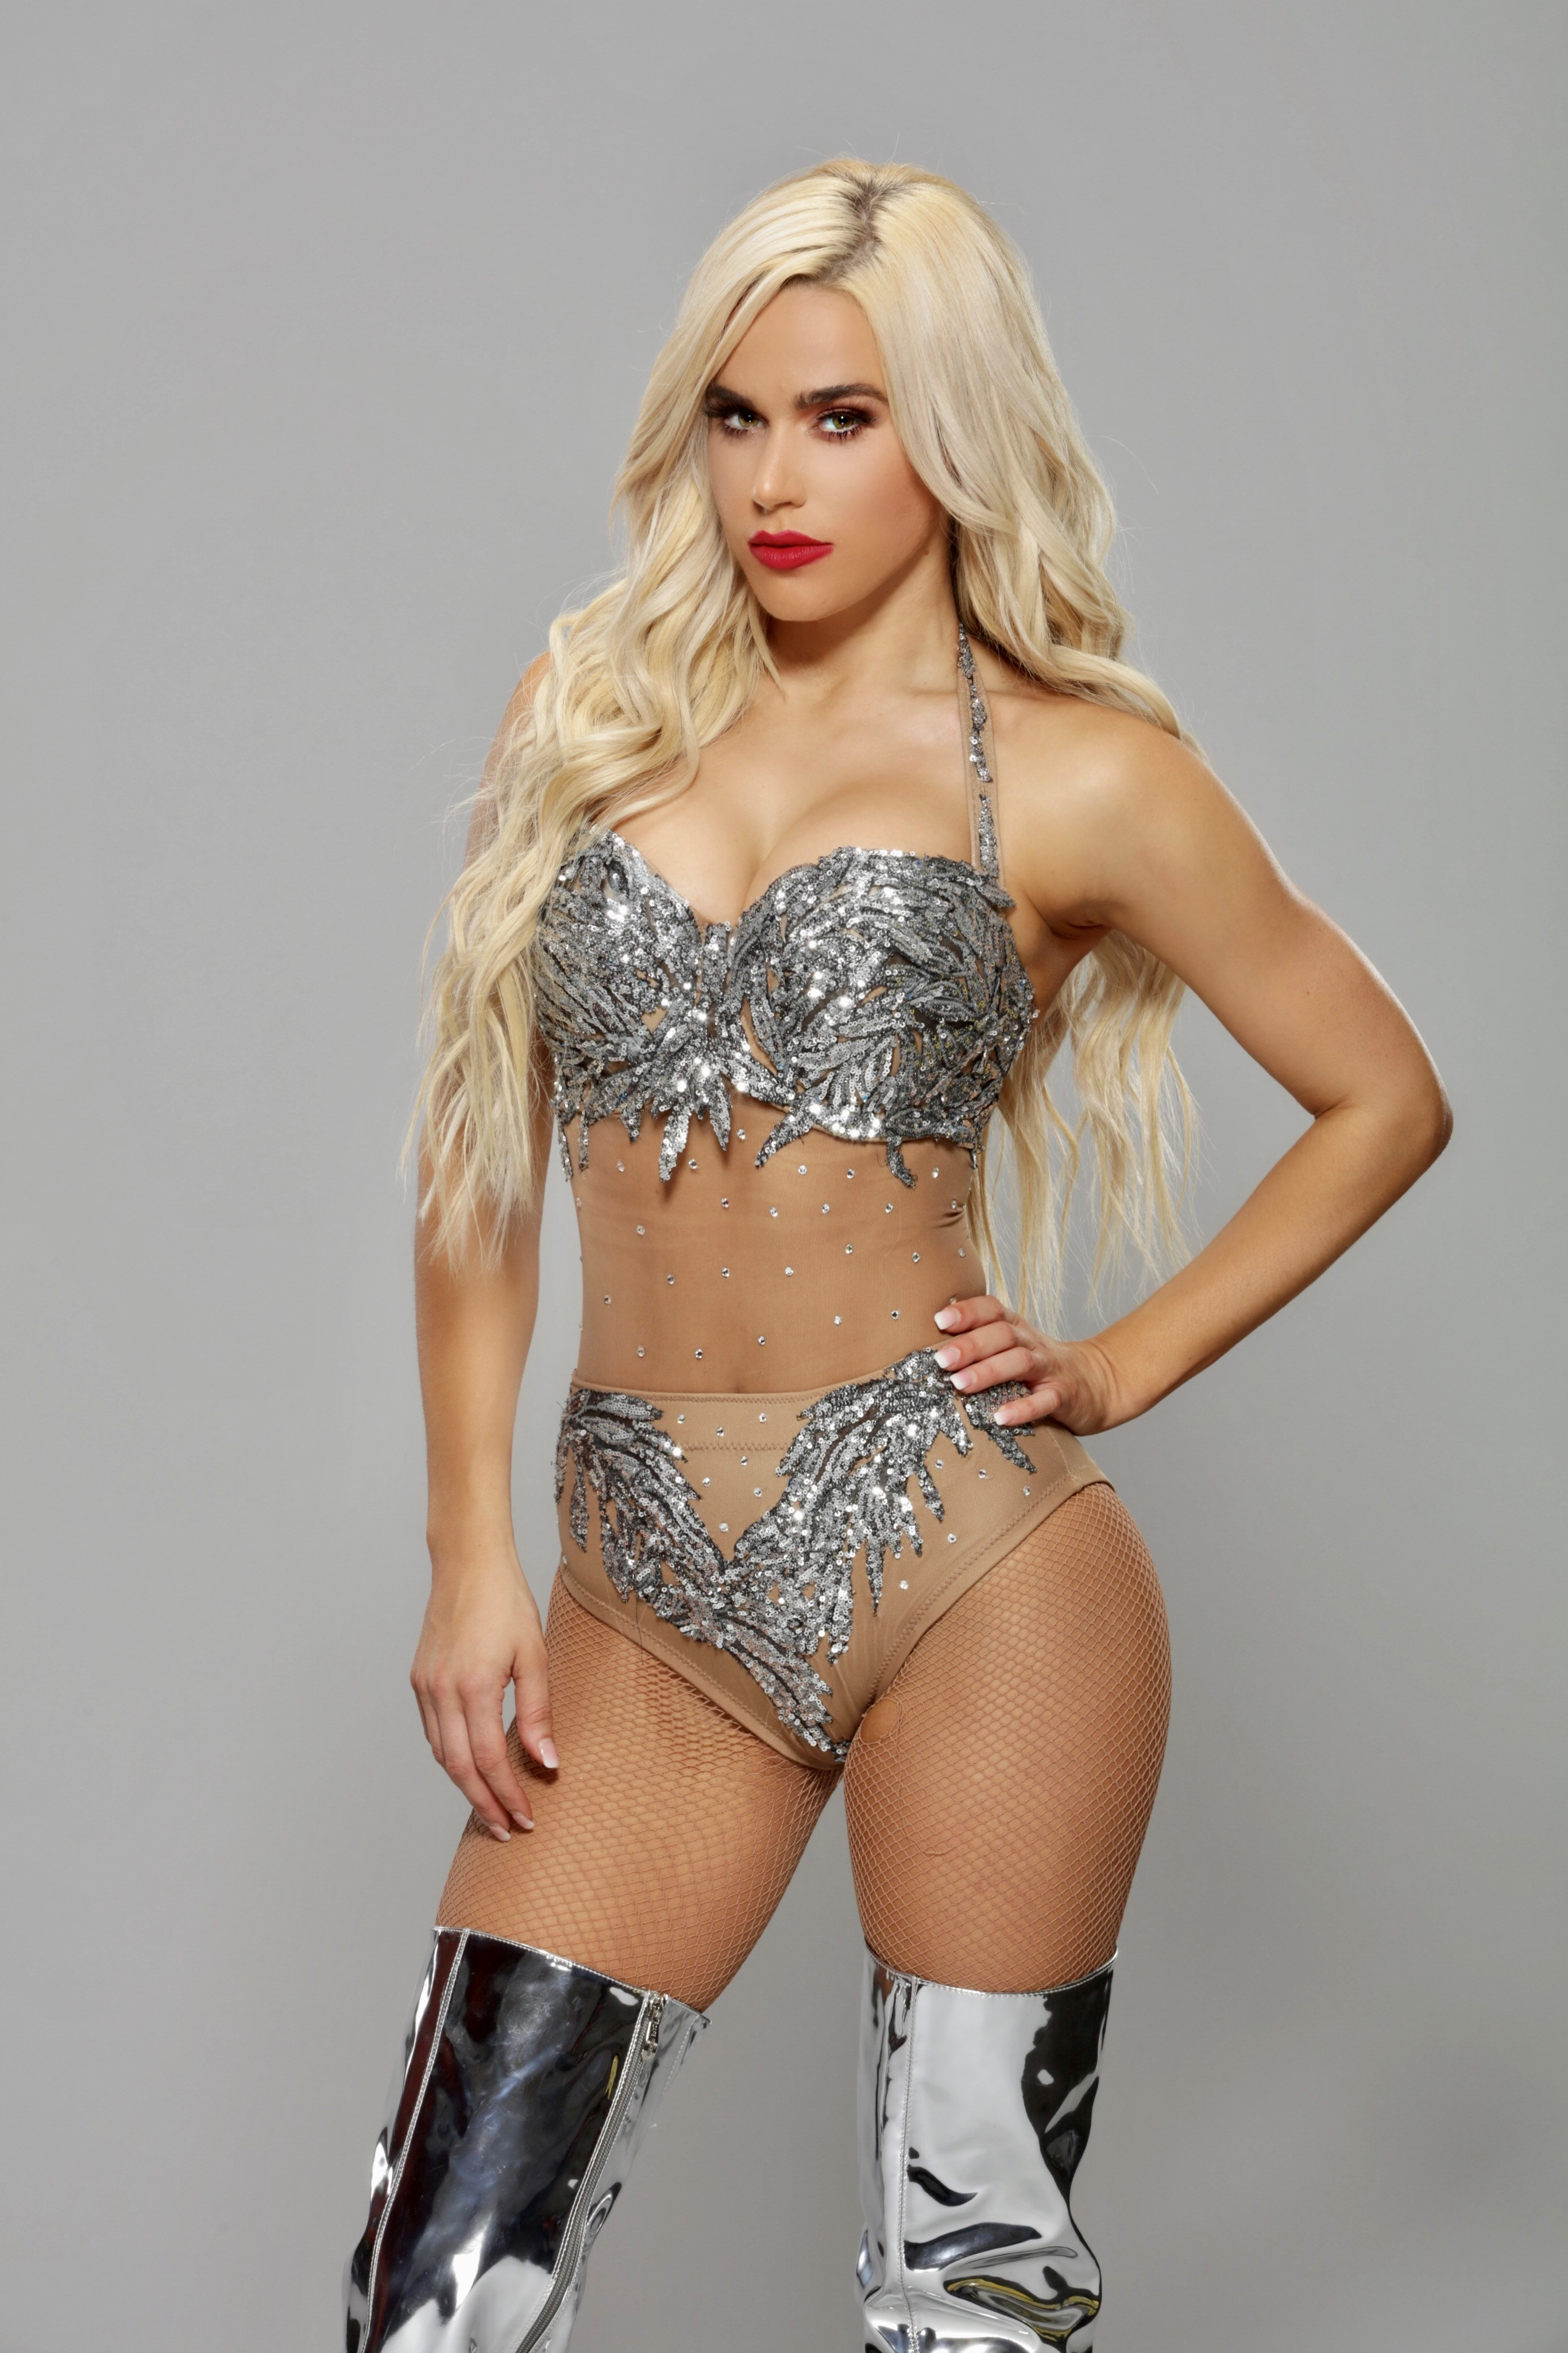 Pictures Lana (WWE) naked (71 photos), Tits, Fappening, Feet, butt 2017